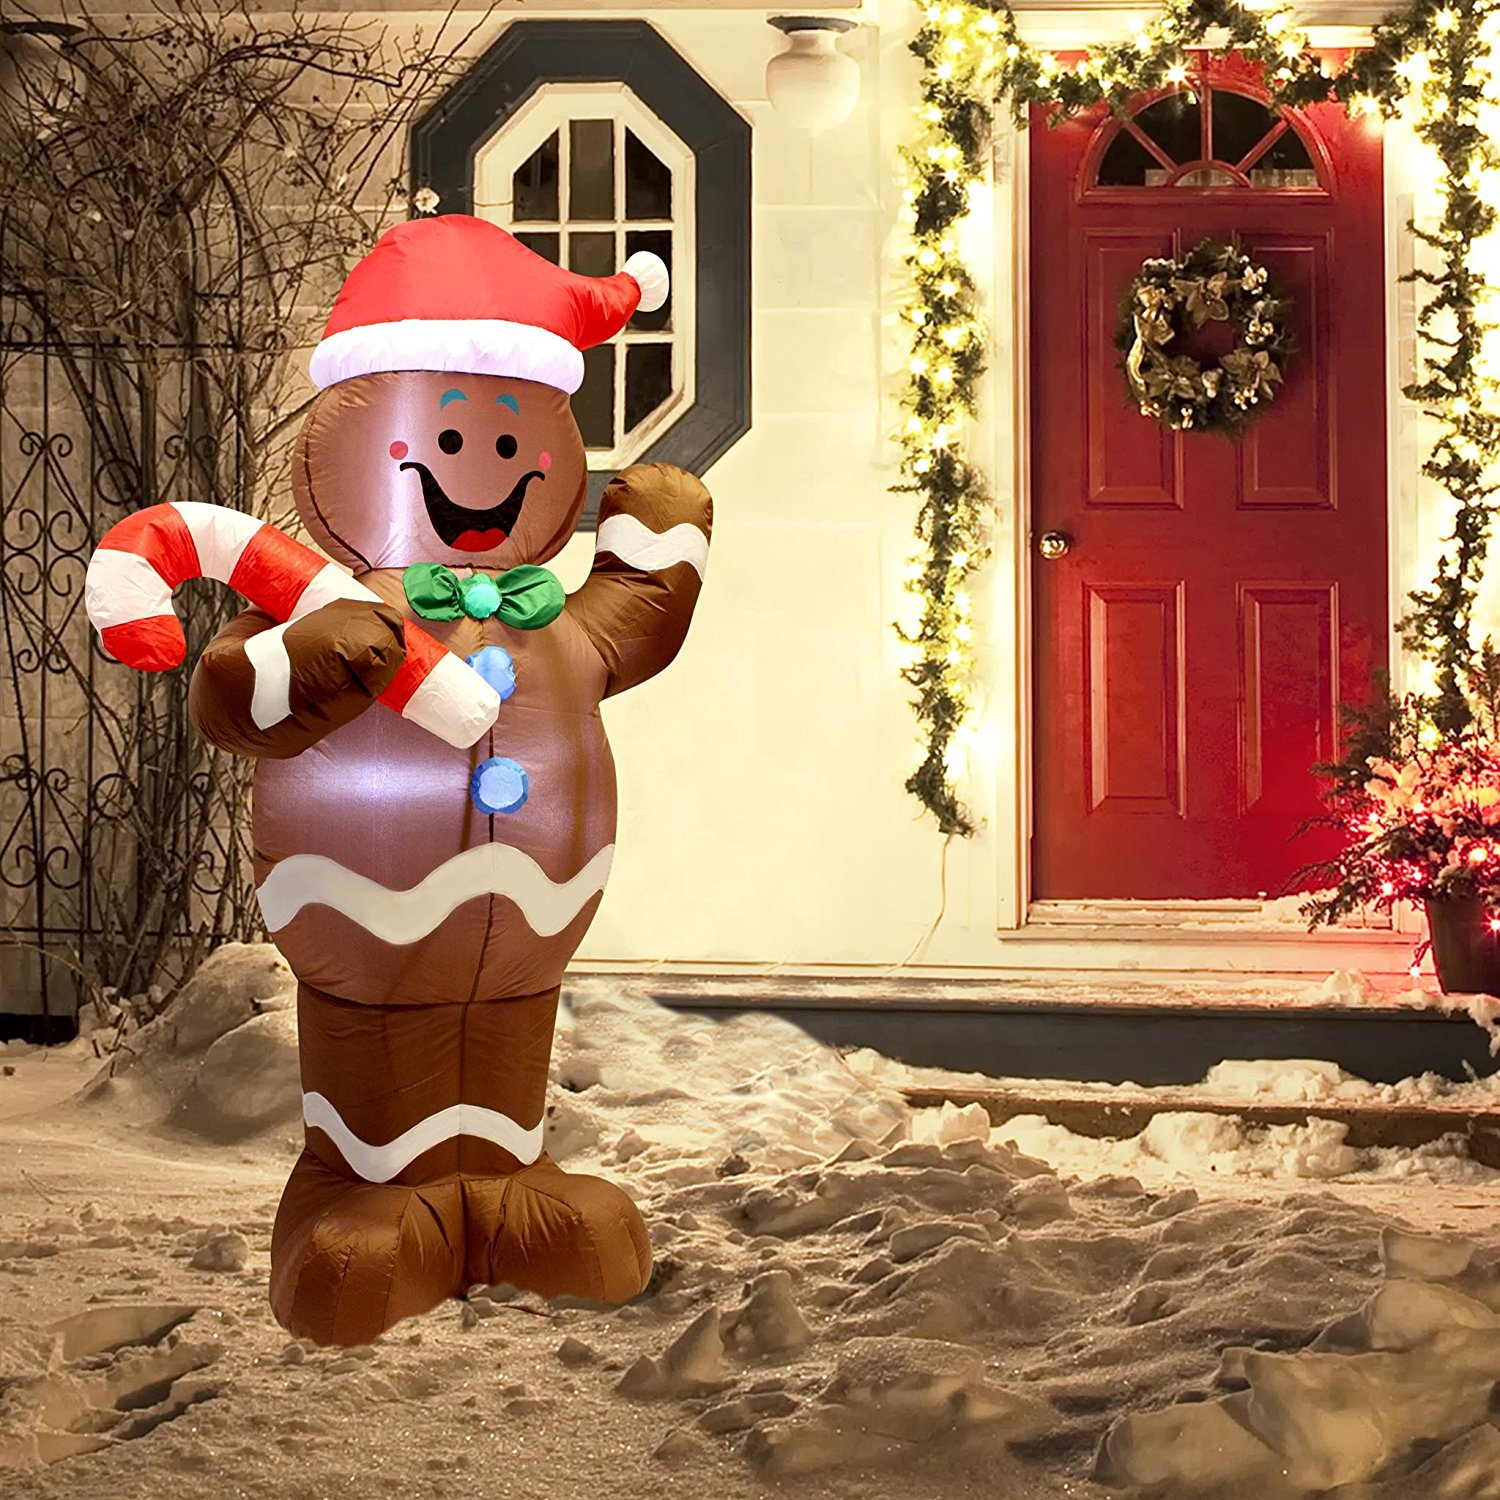 5ft self inflatable gingerbread man - Inflatable Gingerbread Man Christmas Decor